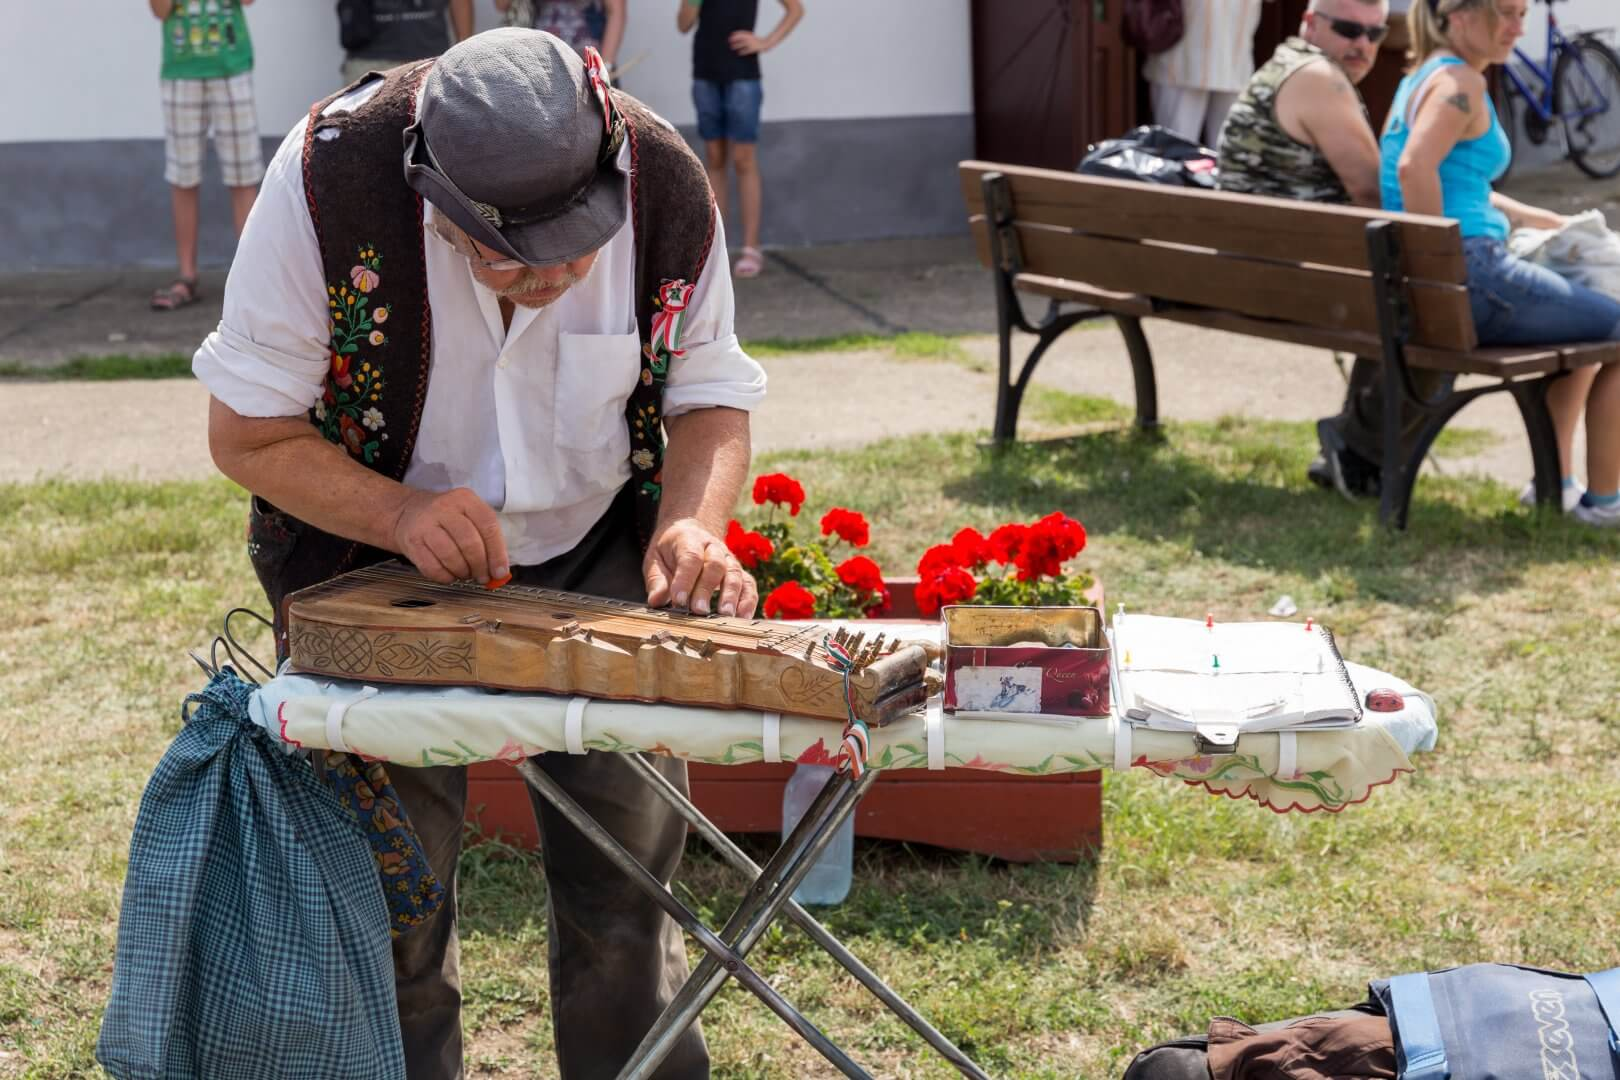 Zither-Spieler in Hortobágy